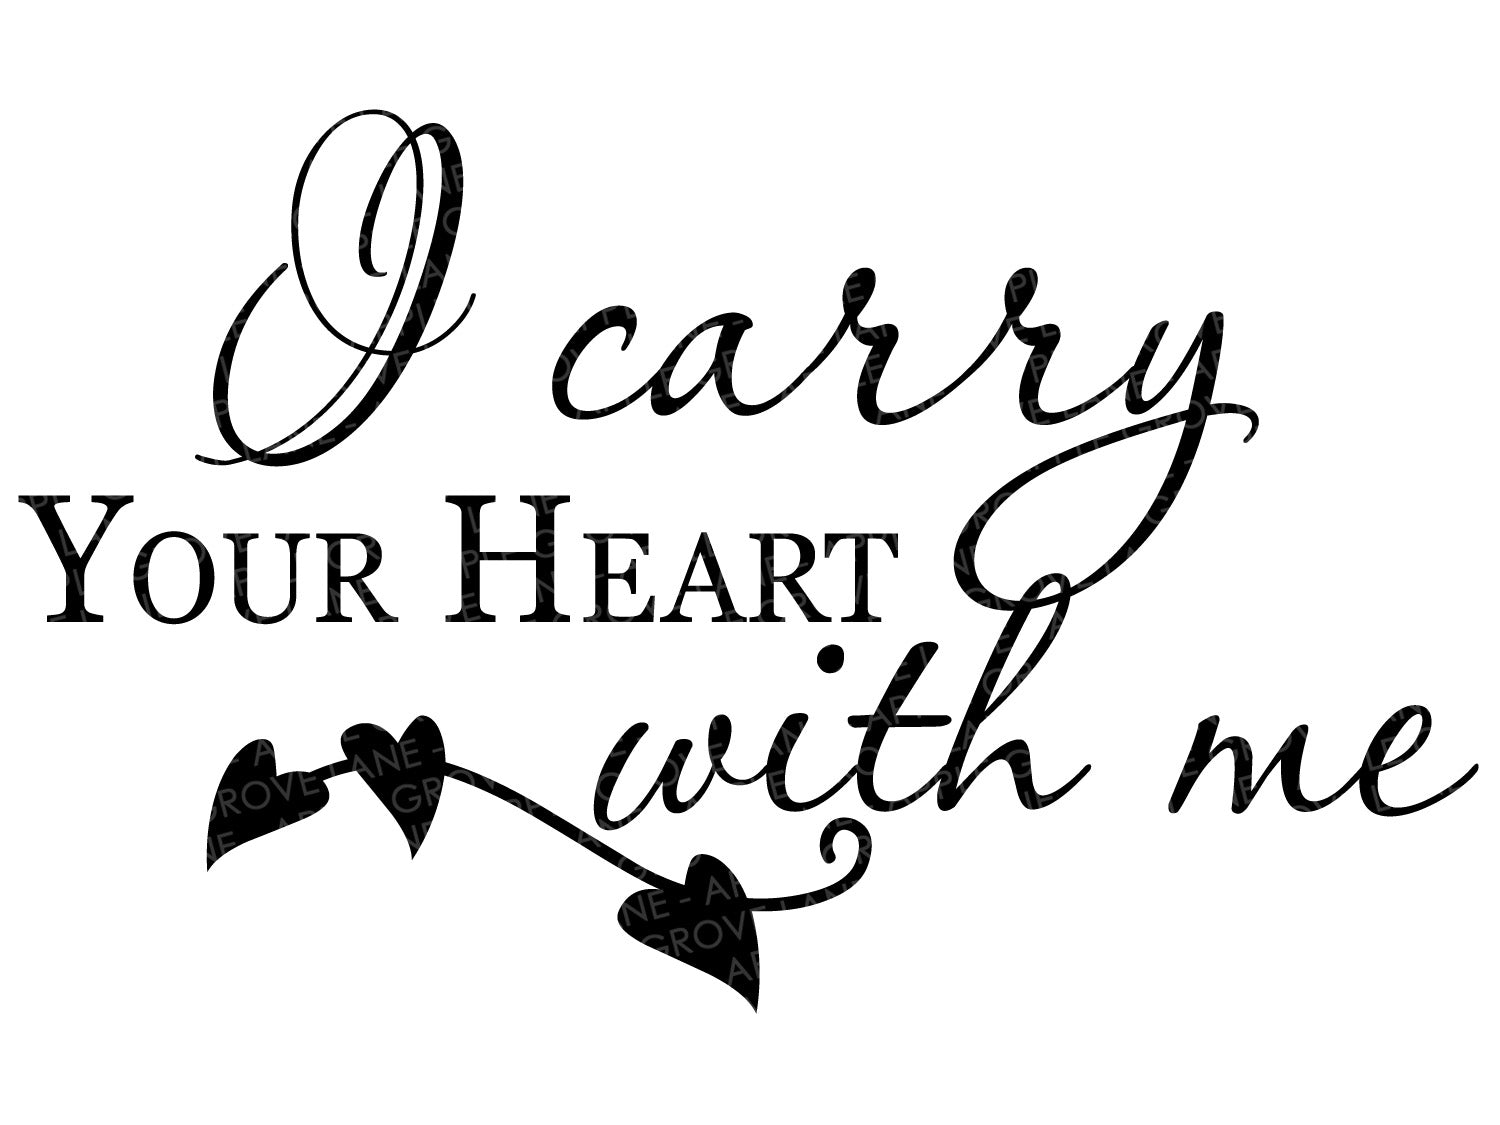 I Carry Your Heart SVG - Love Svg - Wedding Svg - Valentine Svg - Loss Svg - Love Quote Svg - Death Svg - Memorial Svg - Svg Eps Png Dxf